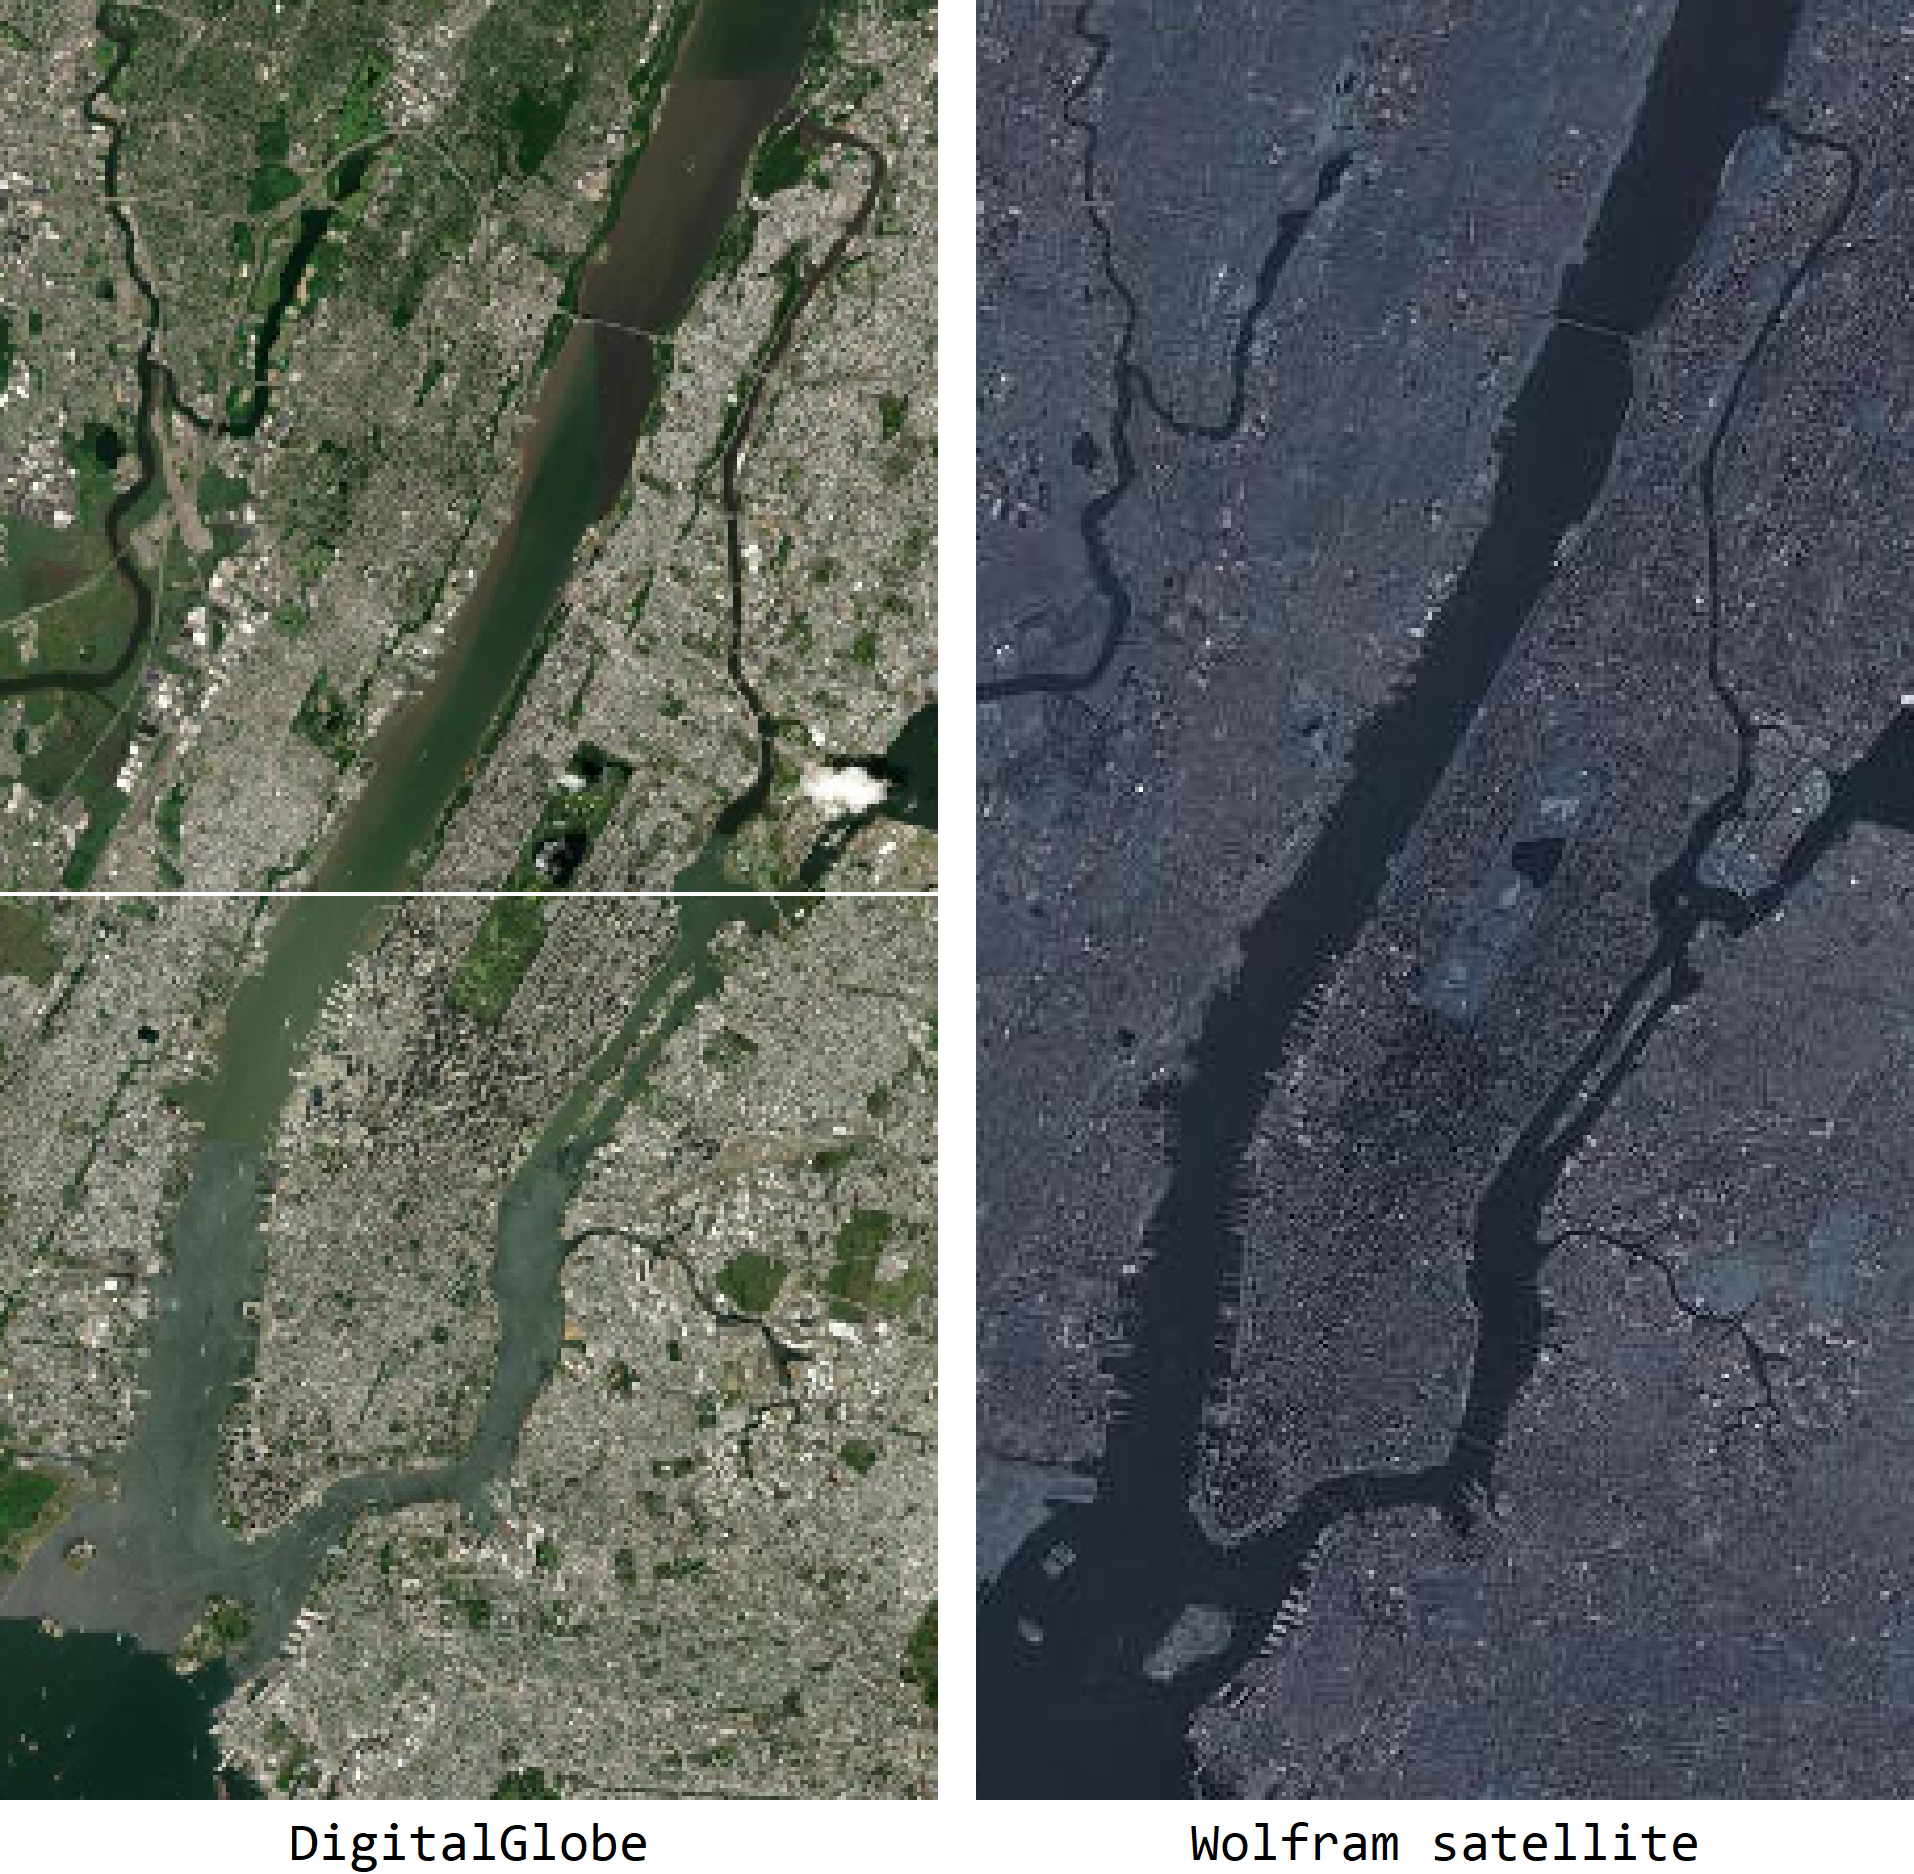 Satellite image comparison